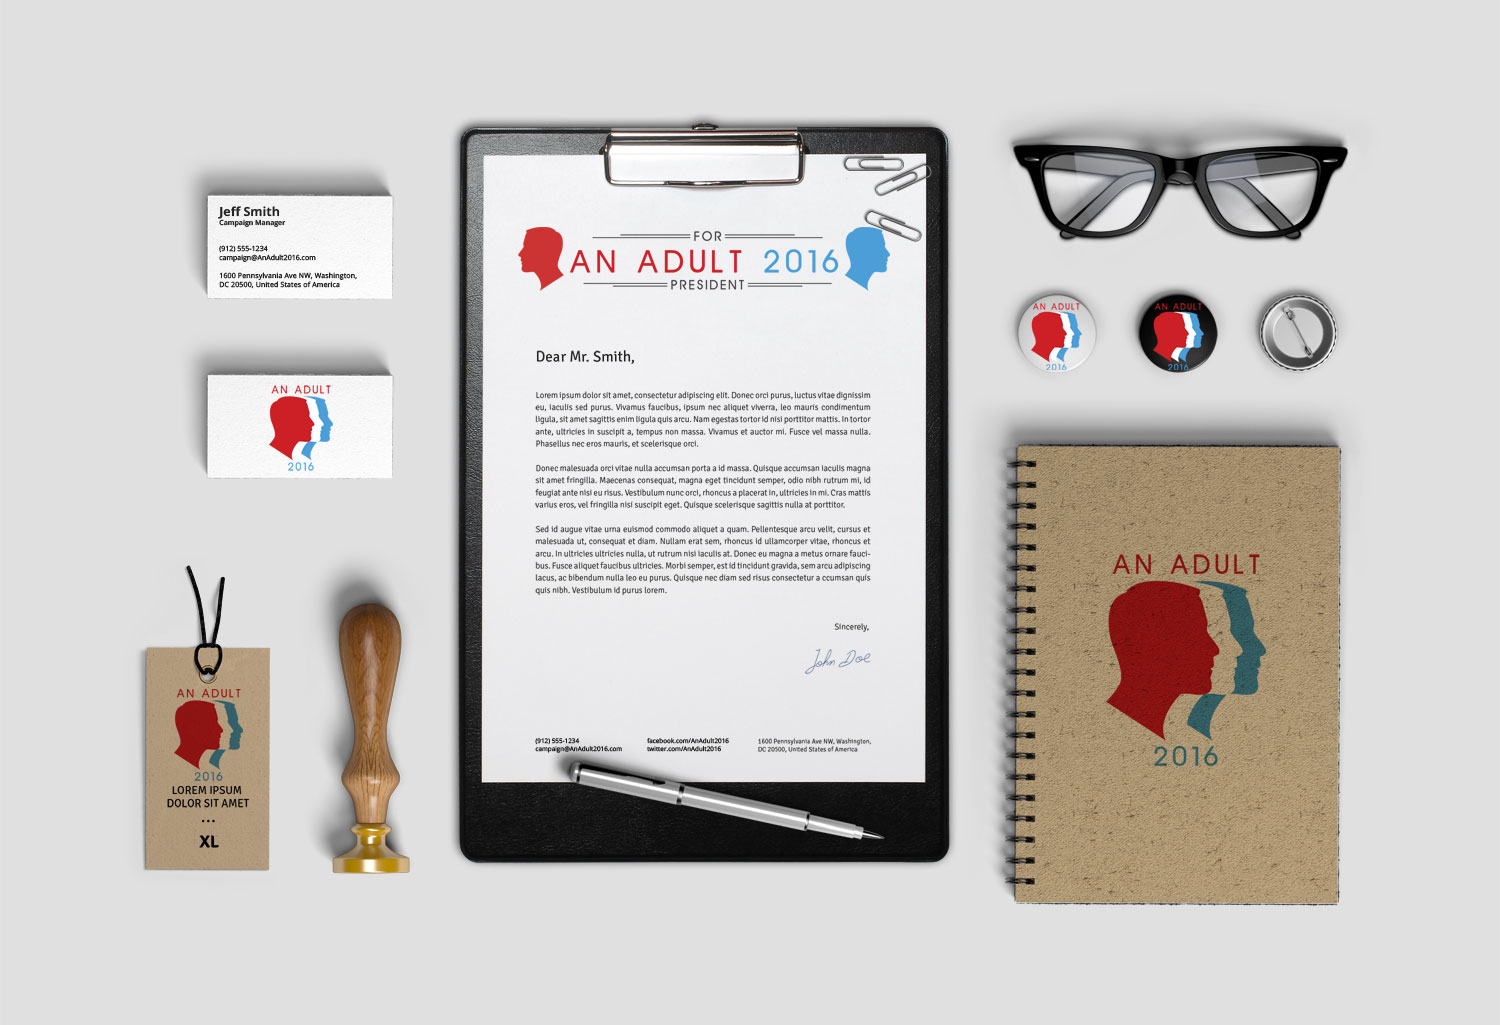 An Adult for President 2016 Logo and Brand Identity Design